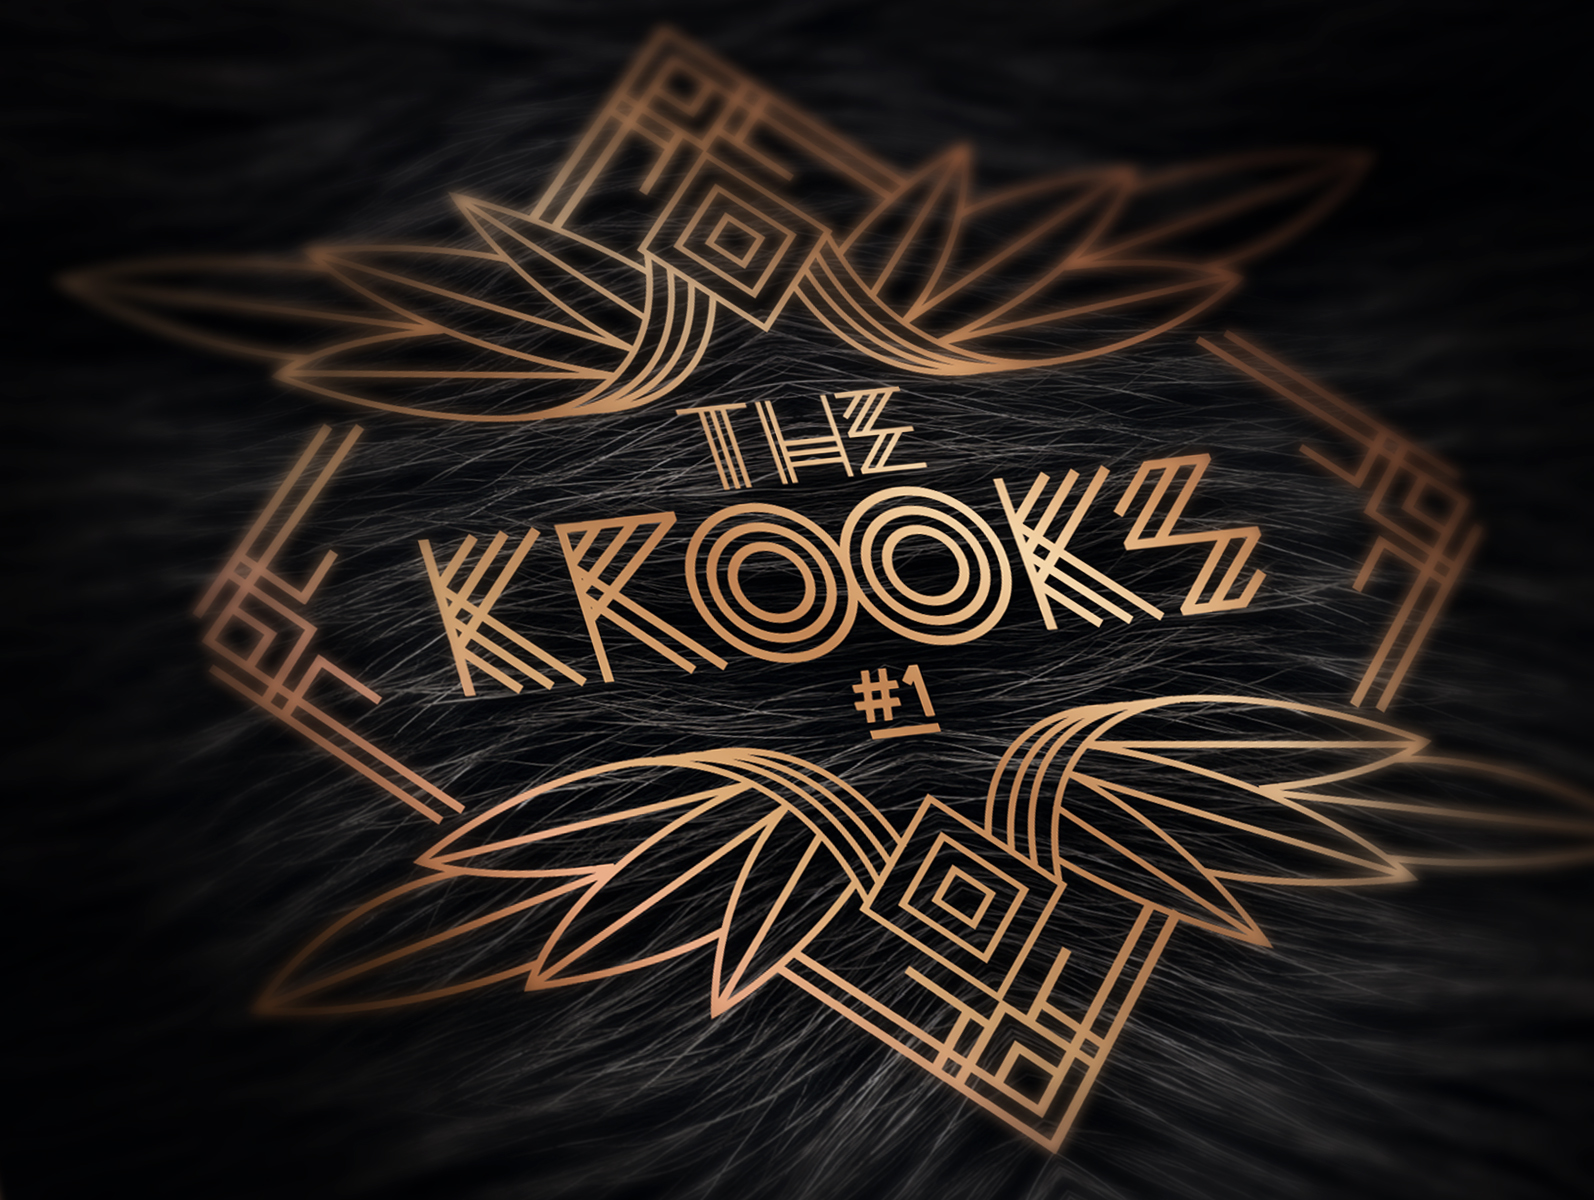 the krooks-zoom